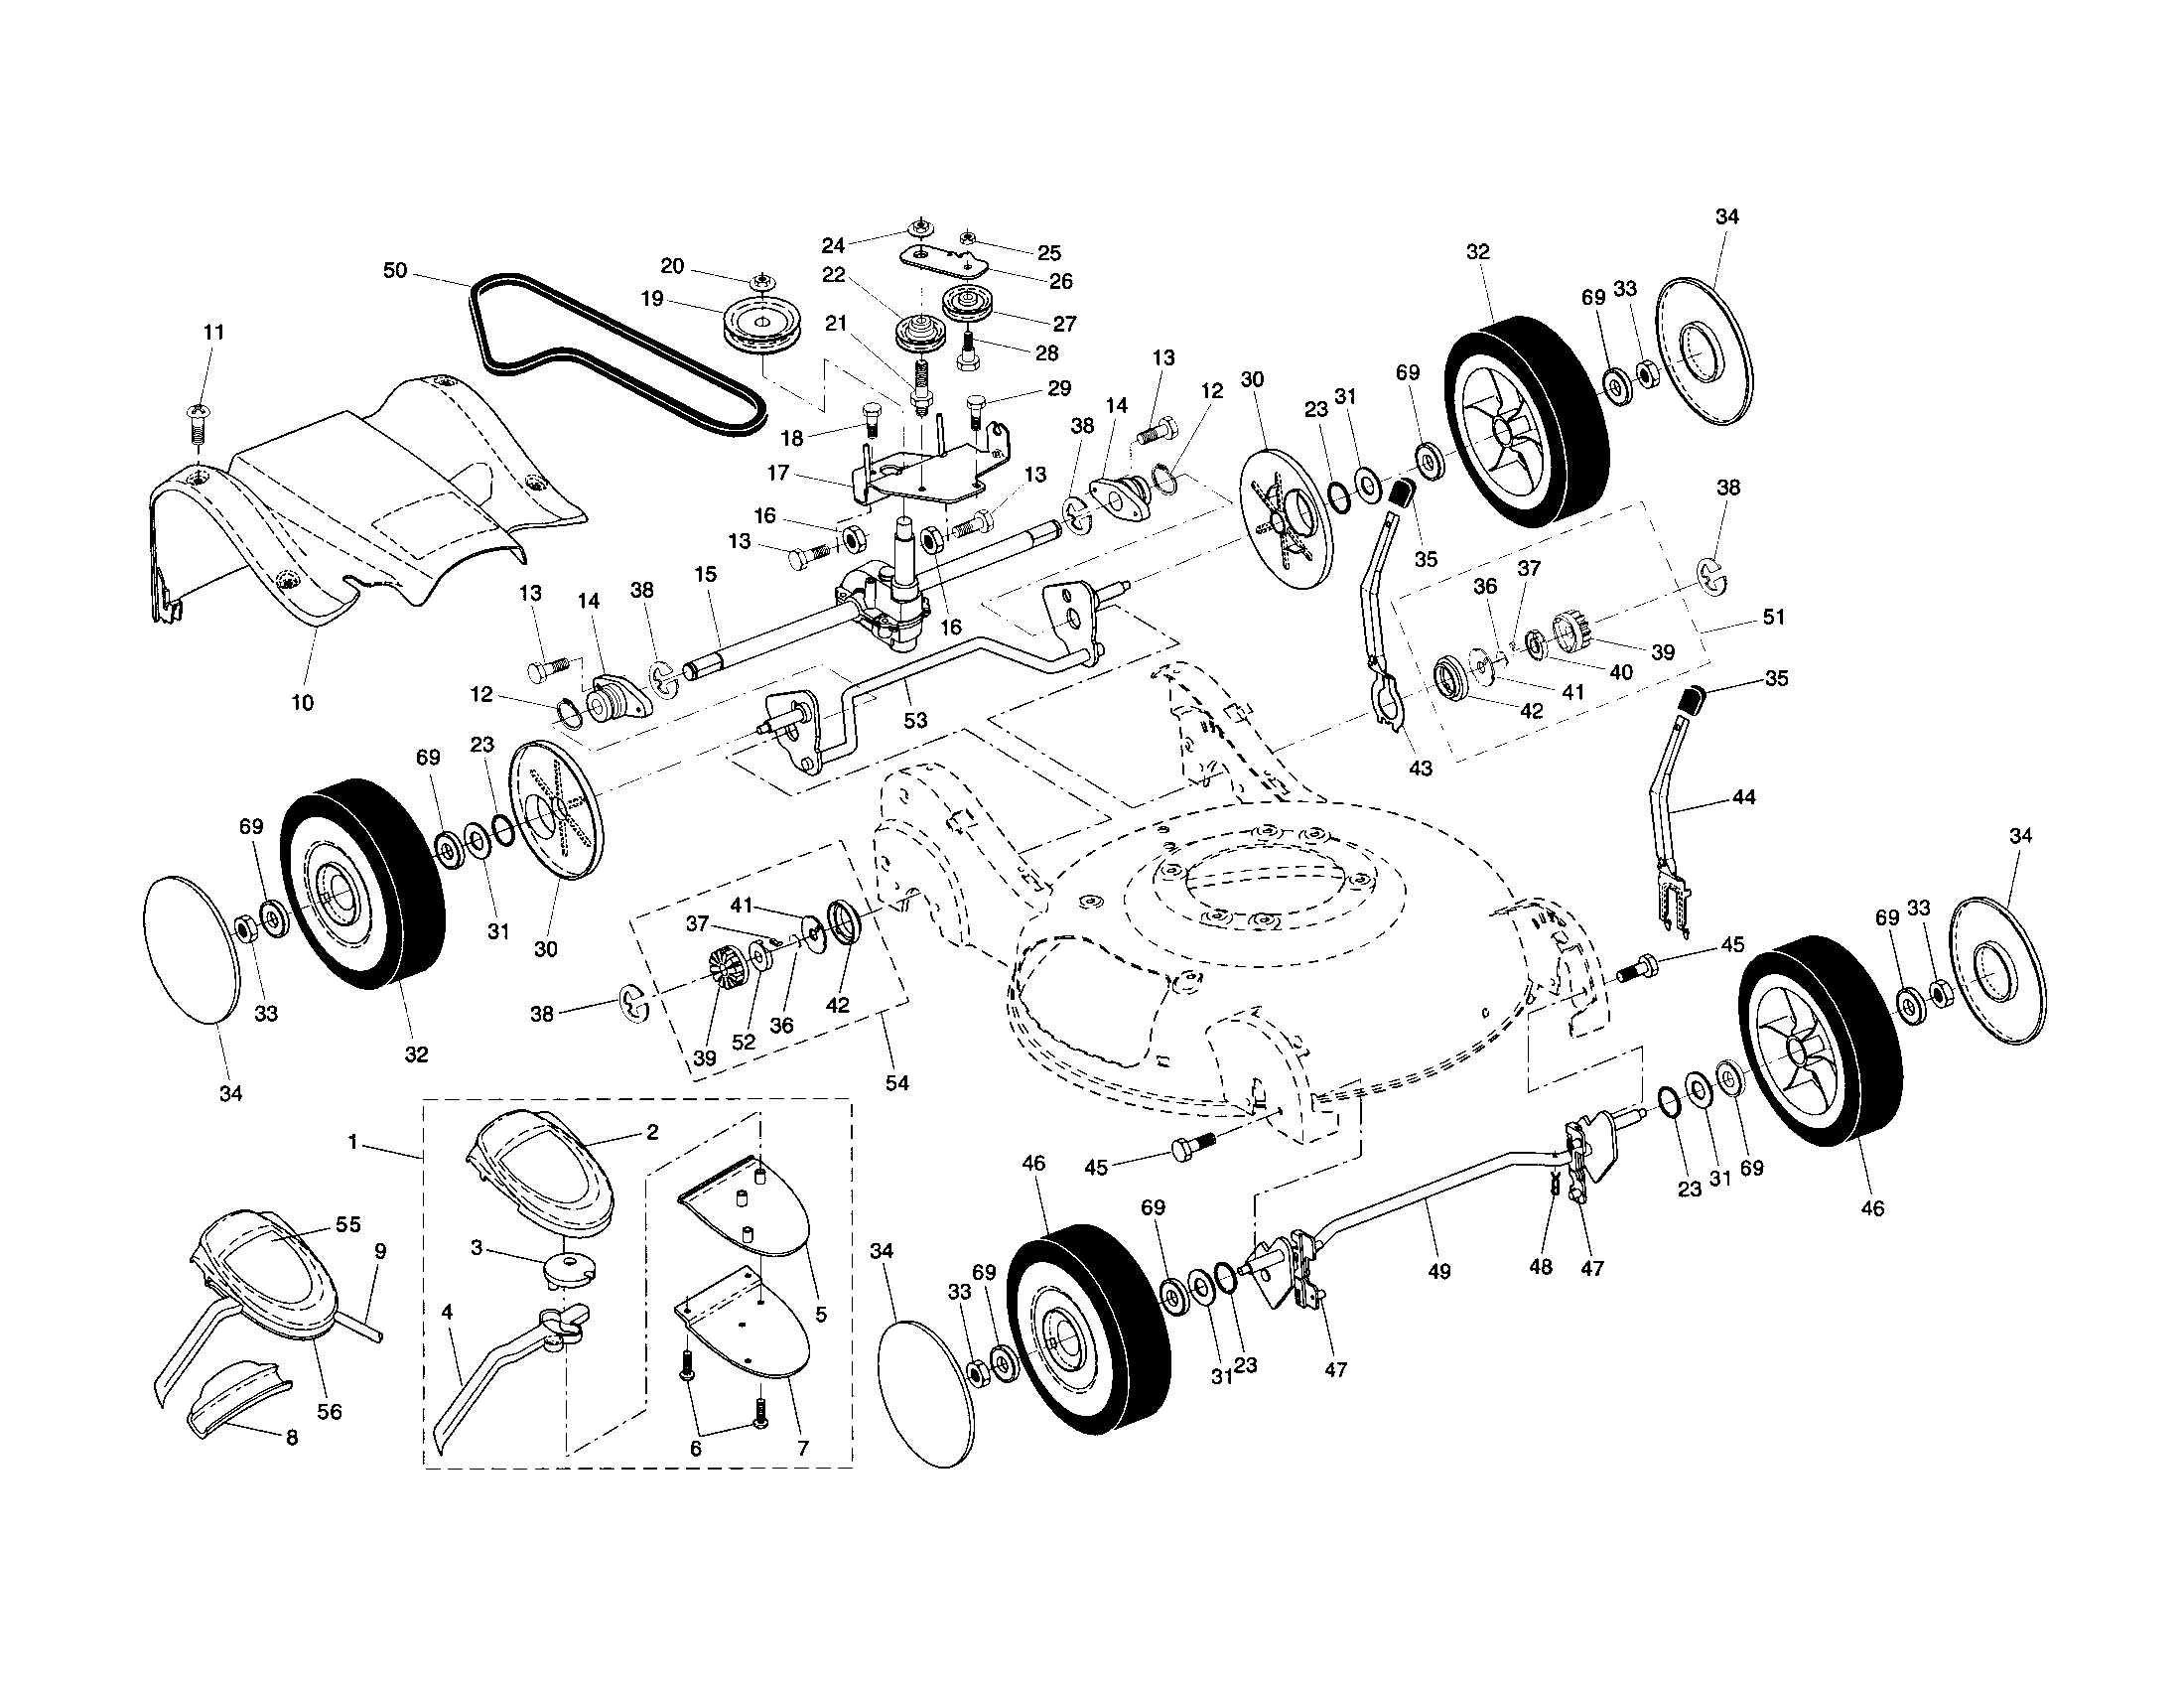 WHEELS/TIRES/BELT/DRIVE COVER Diagram & Parts List for